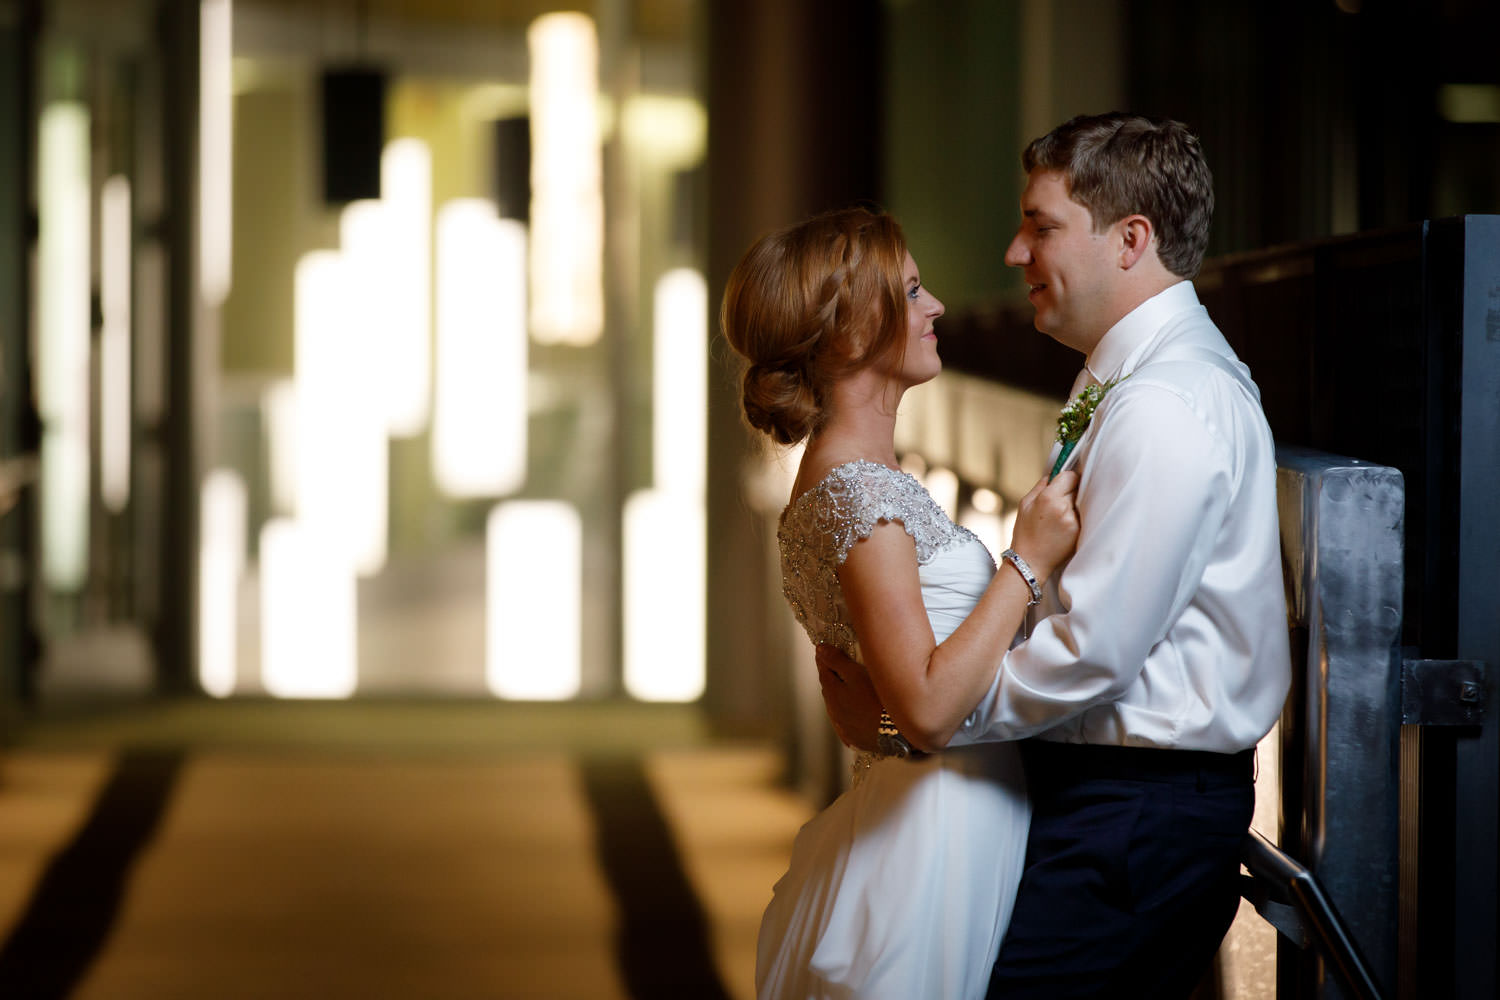 Red haired bride holding groom by suspenders in front of glass building